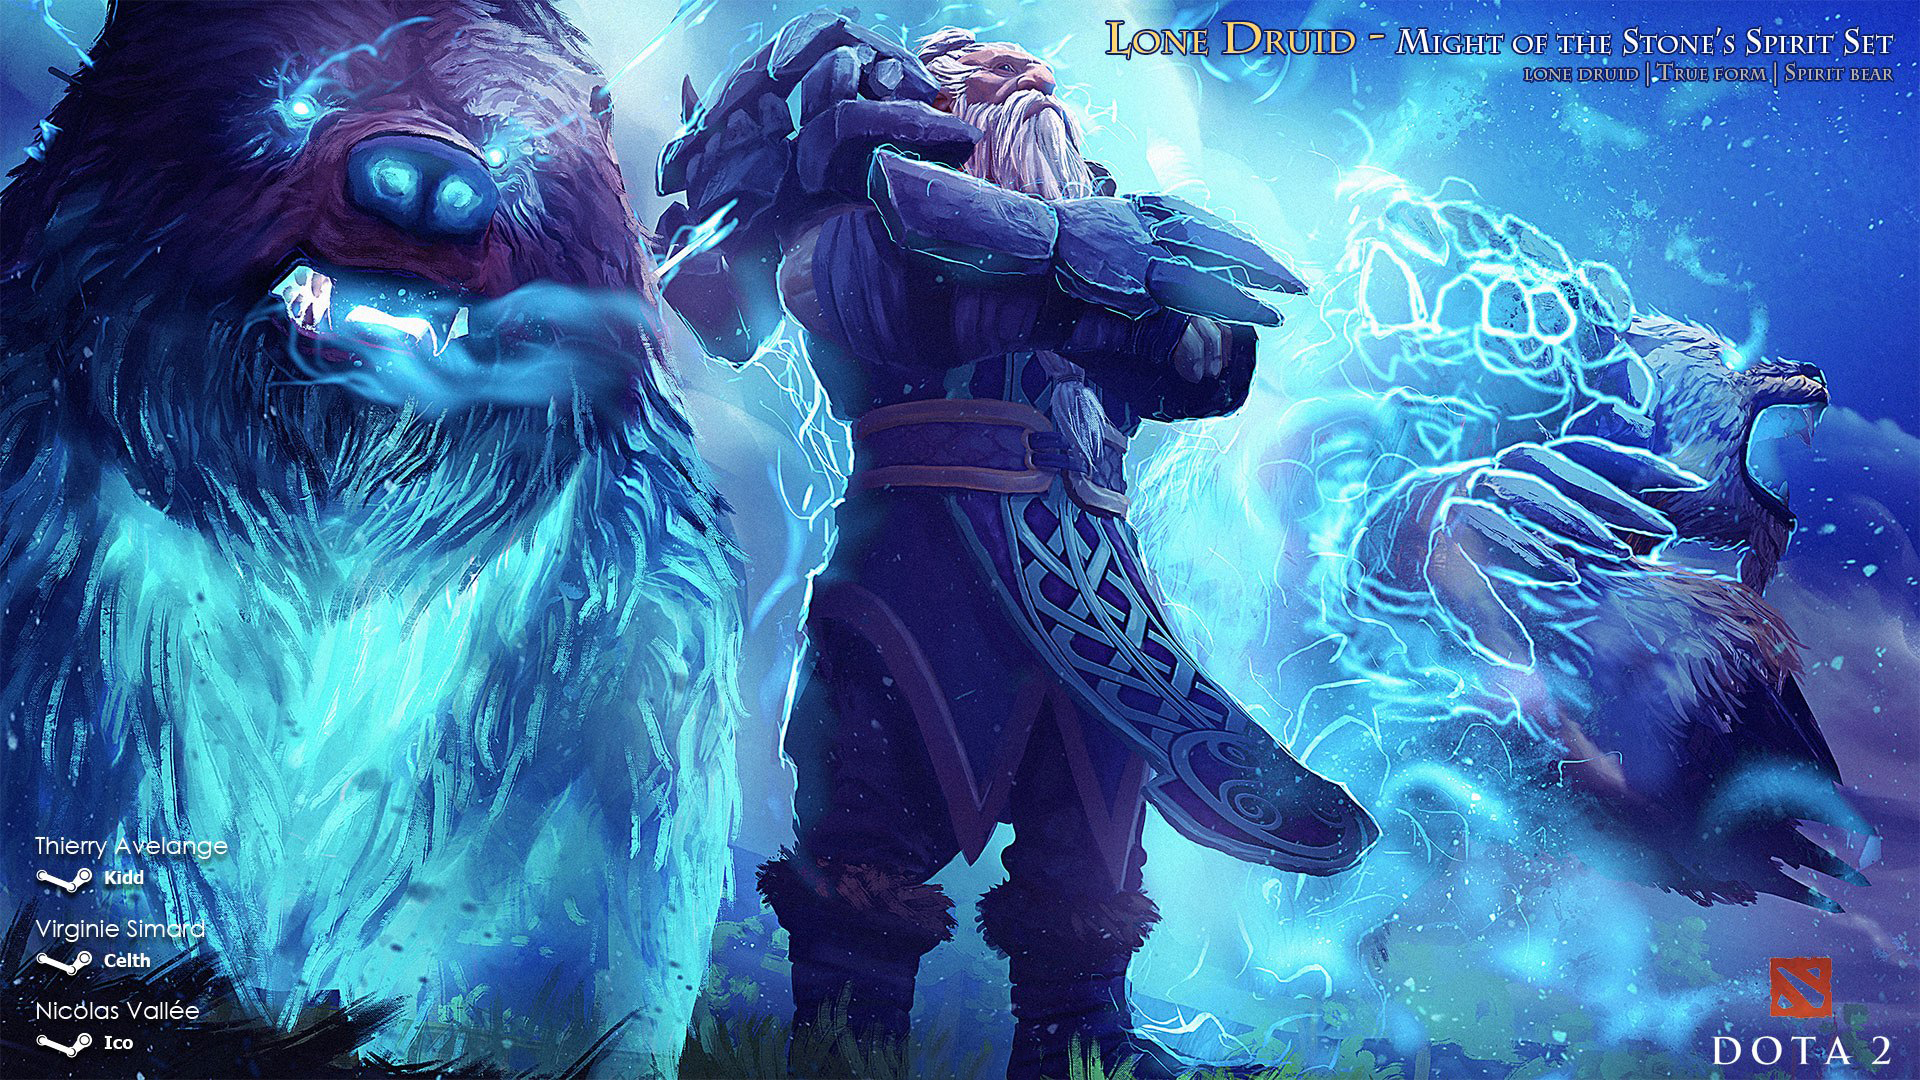 Druid Wallpaper 1920x1080 posted by Ryan Simpson